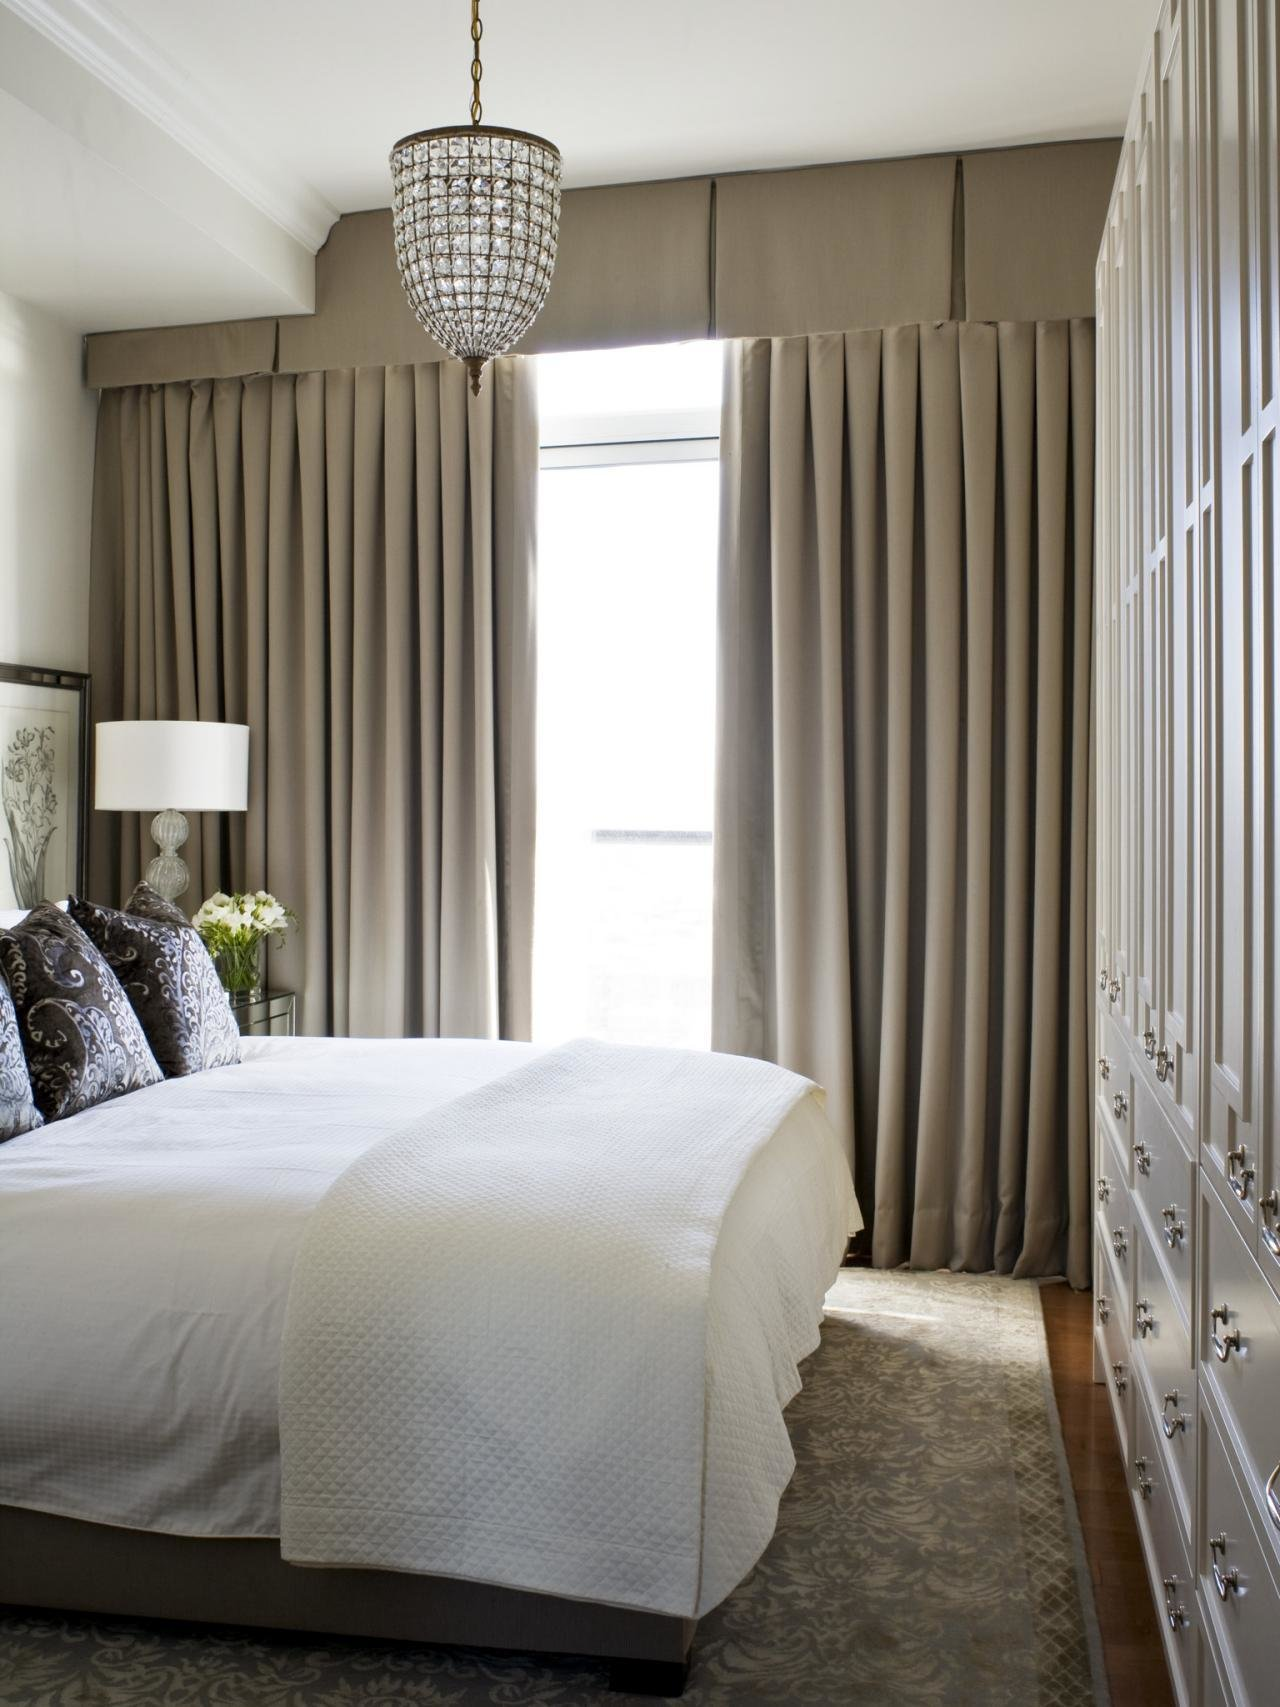 Best 14 Ideas For A Small Bedroom Hgtv S Decorating Design With Pictures